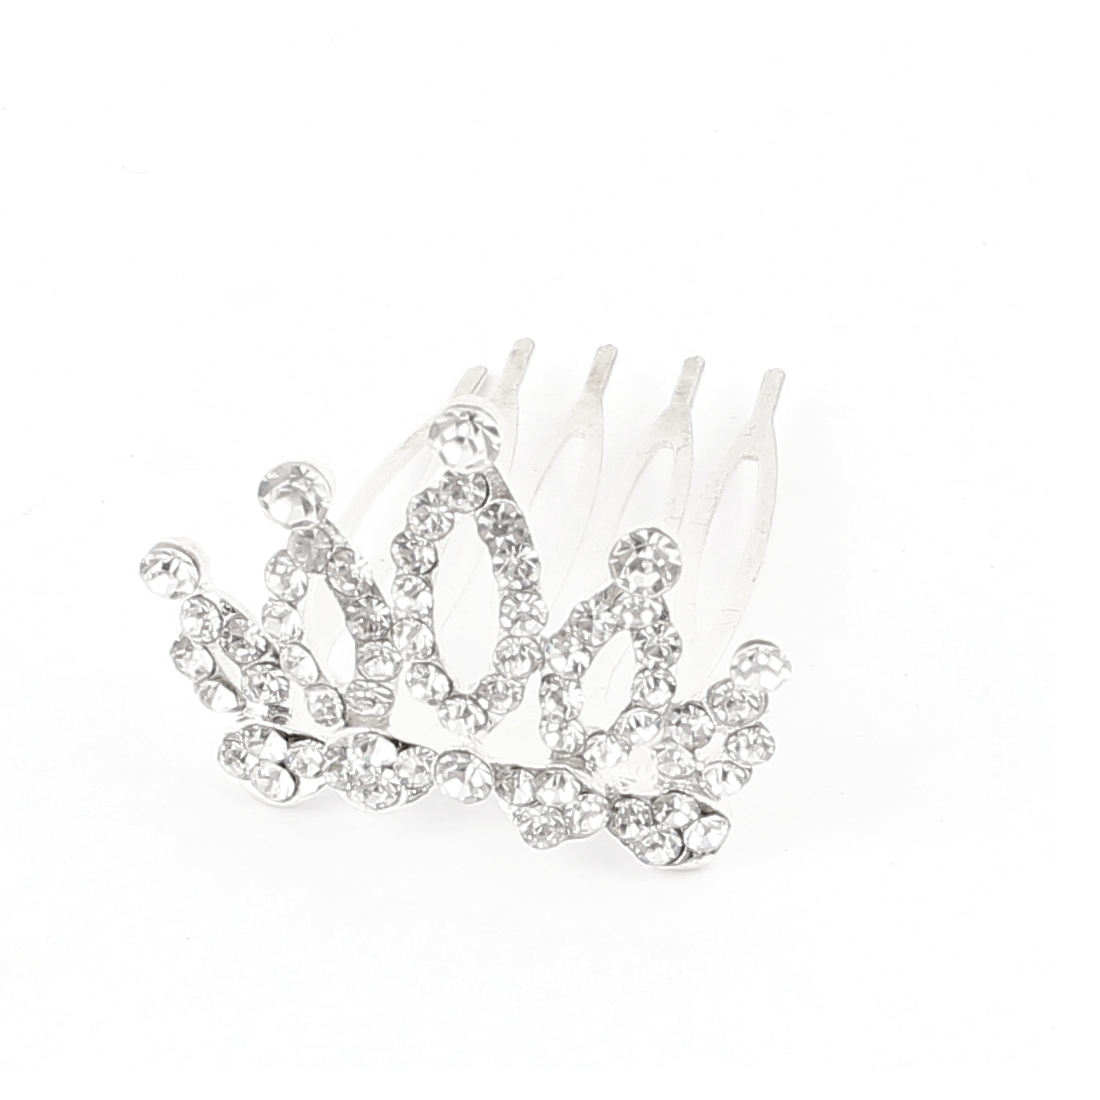 Wedding Bridal Faux Rhinestone Detail Hairpin Hair Crown Comb Clip Silver Tone